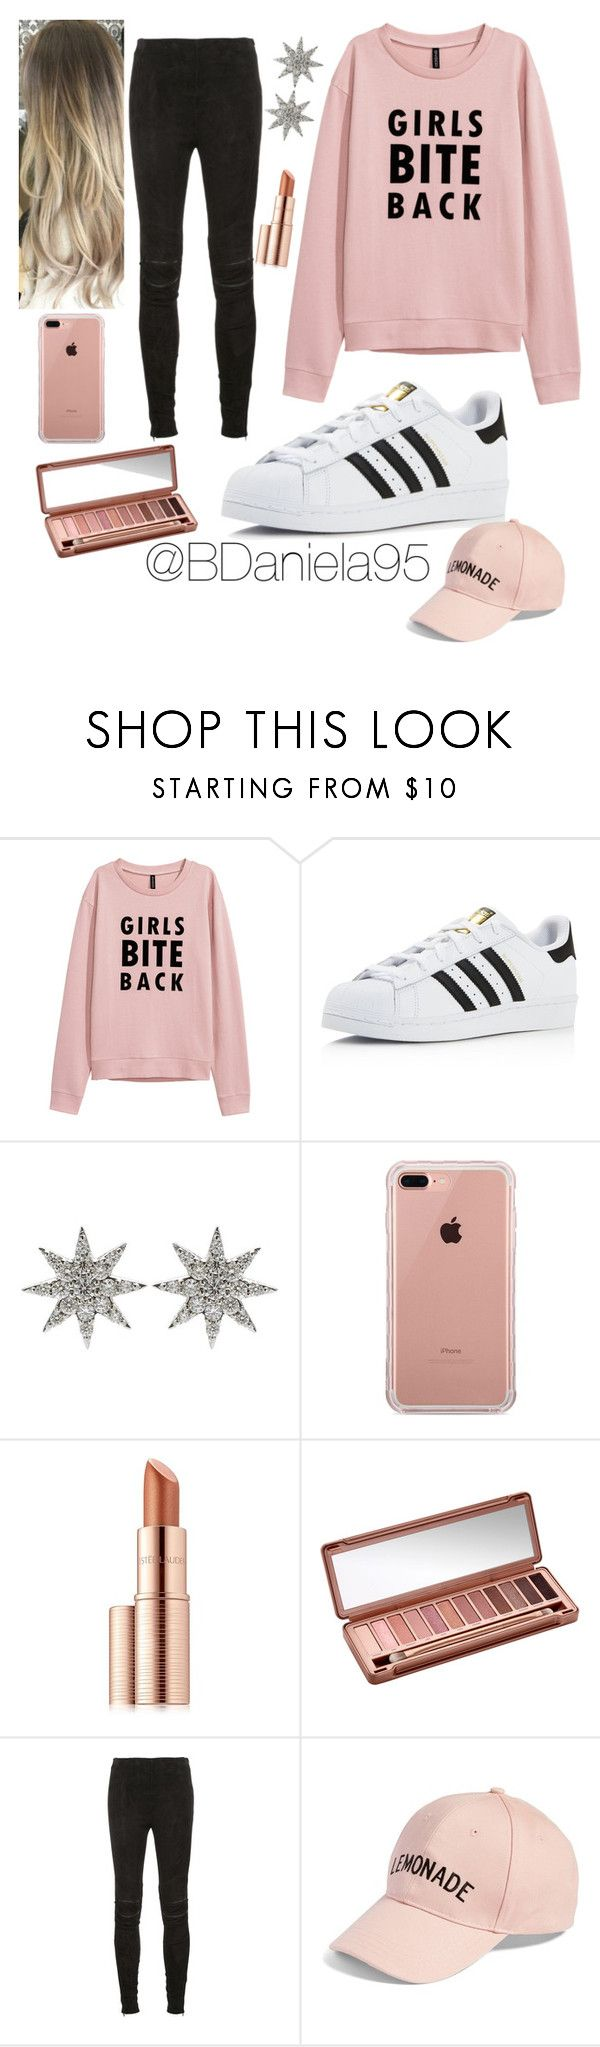 """""""Untitled #234"""" by daniela95140 on Polyvore featuring adidas, Bee Goddess, Belkin, Estée Lauder, Urban Decay, Yves Saint Laurent and Amici Accessories"""